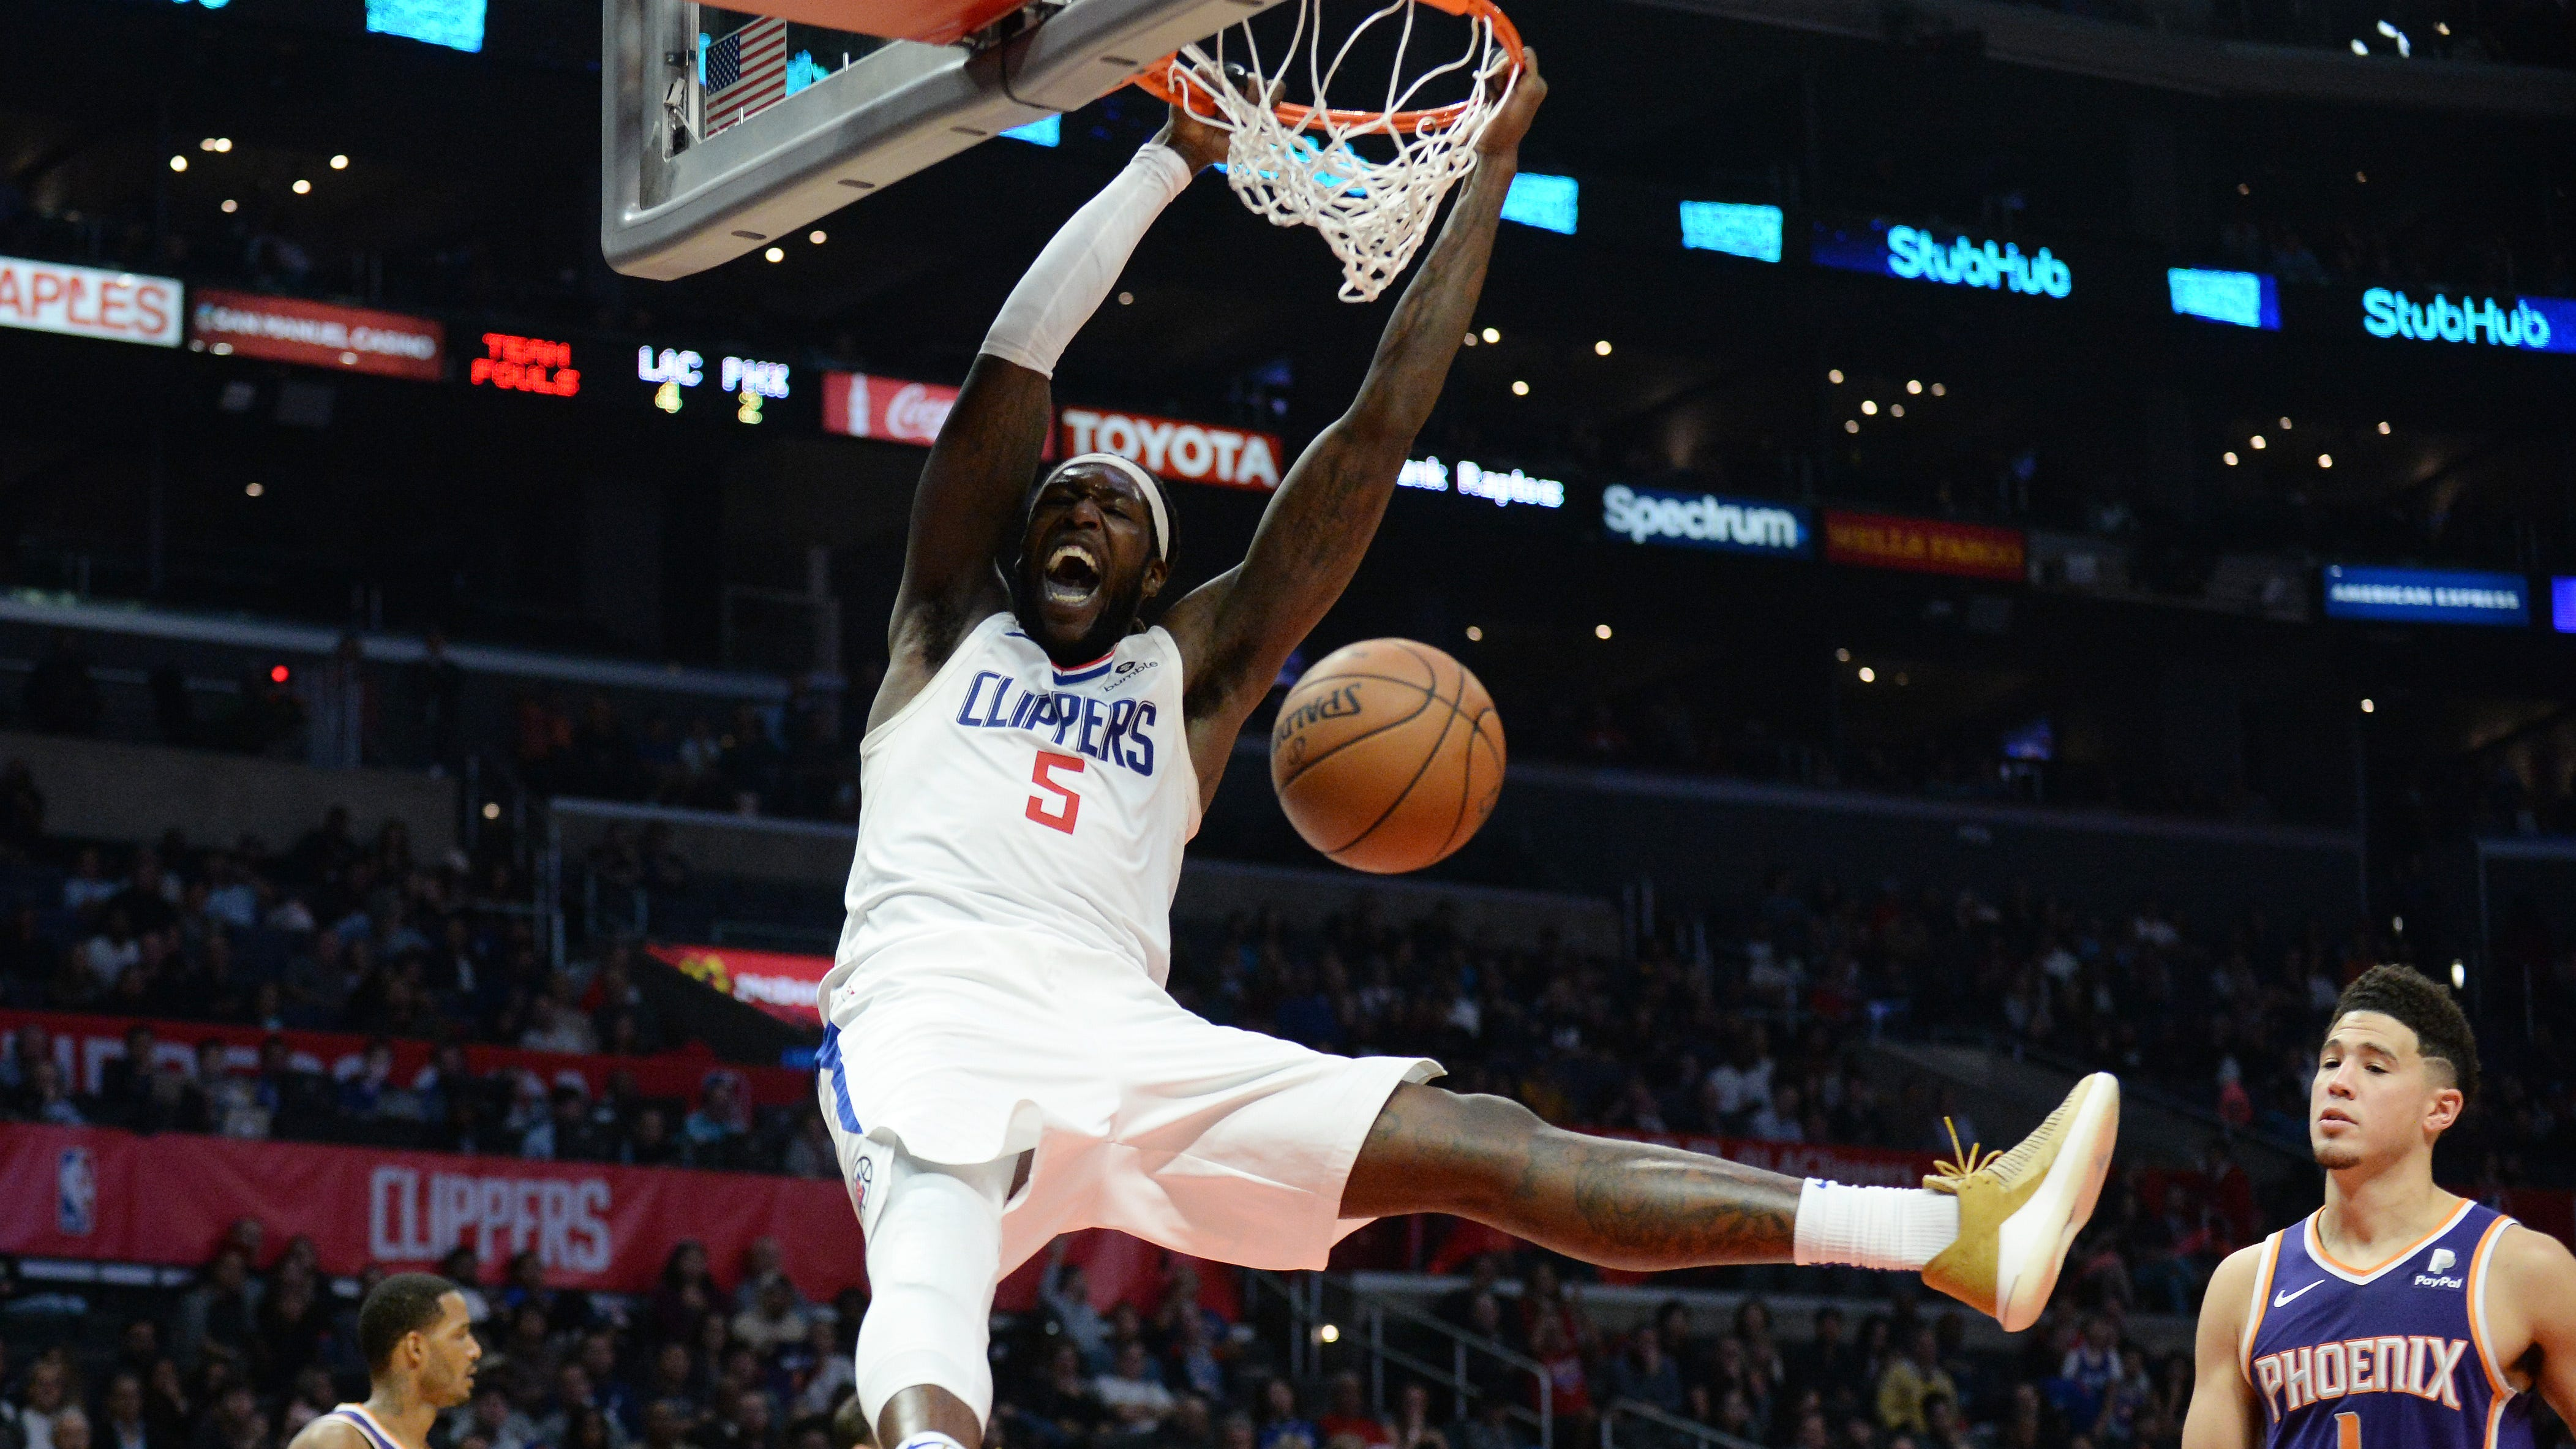 clippers: don't expect conference leaders to fade anytime soon